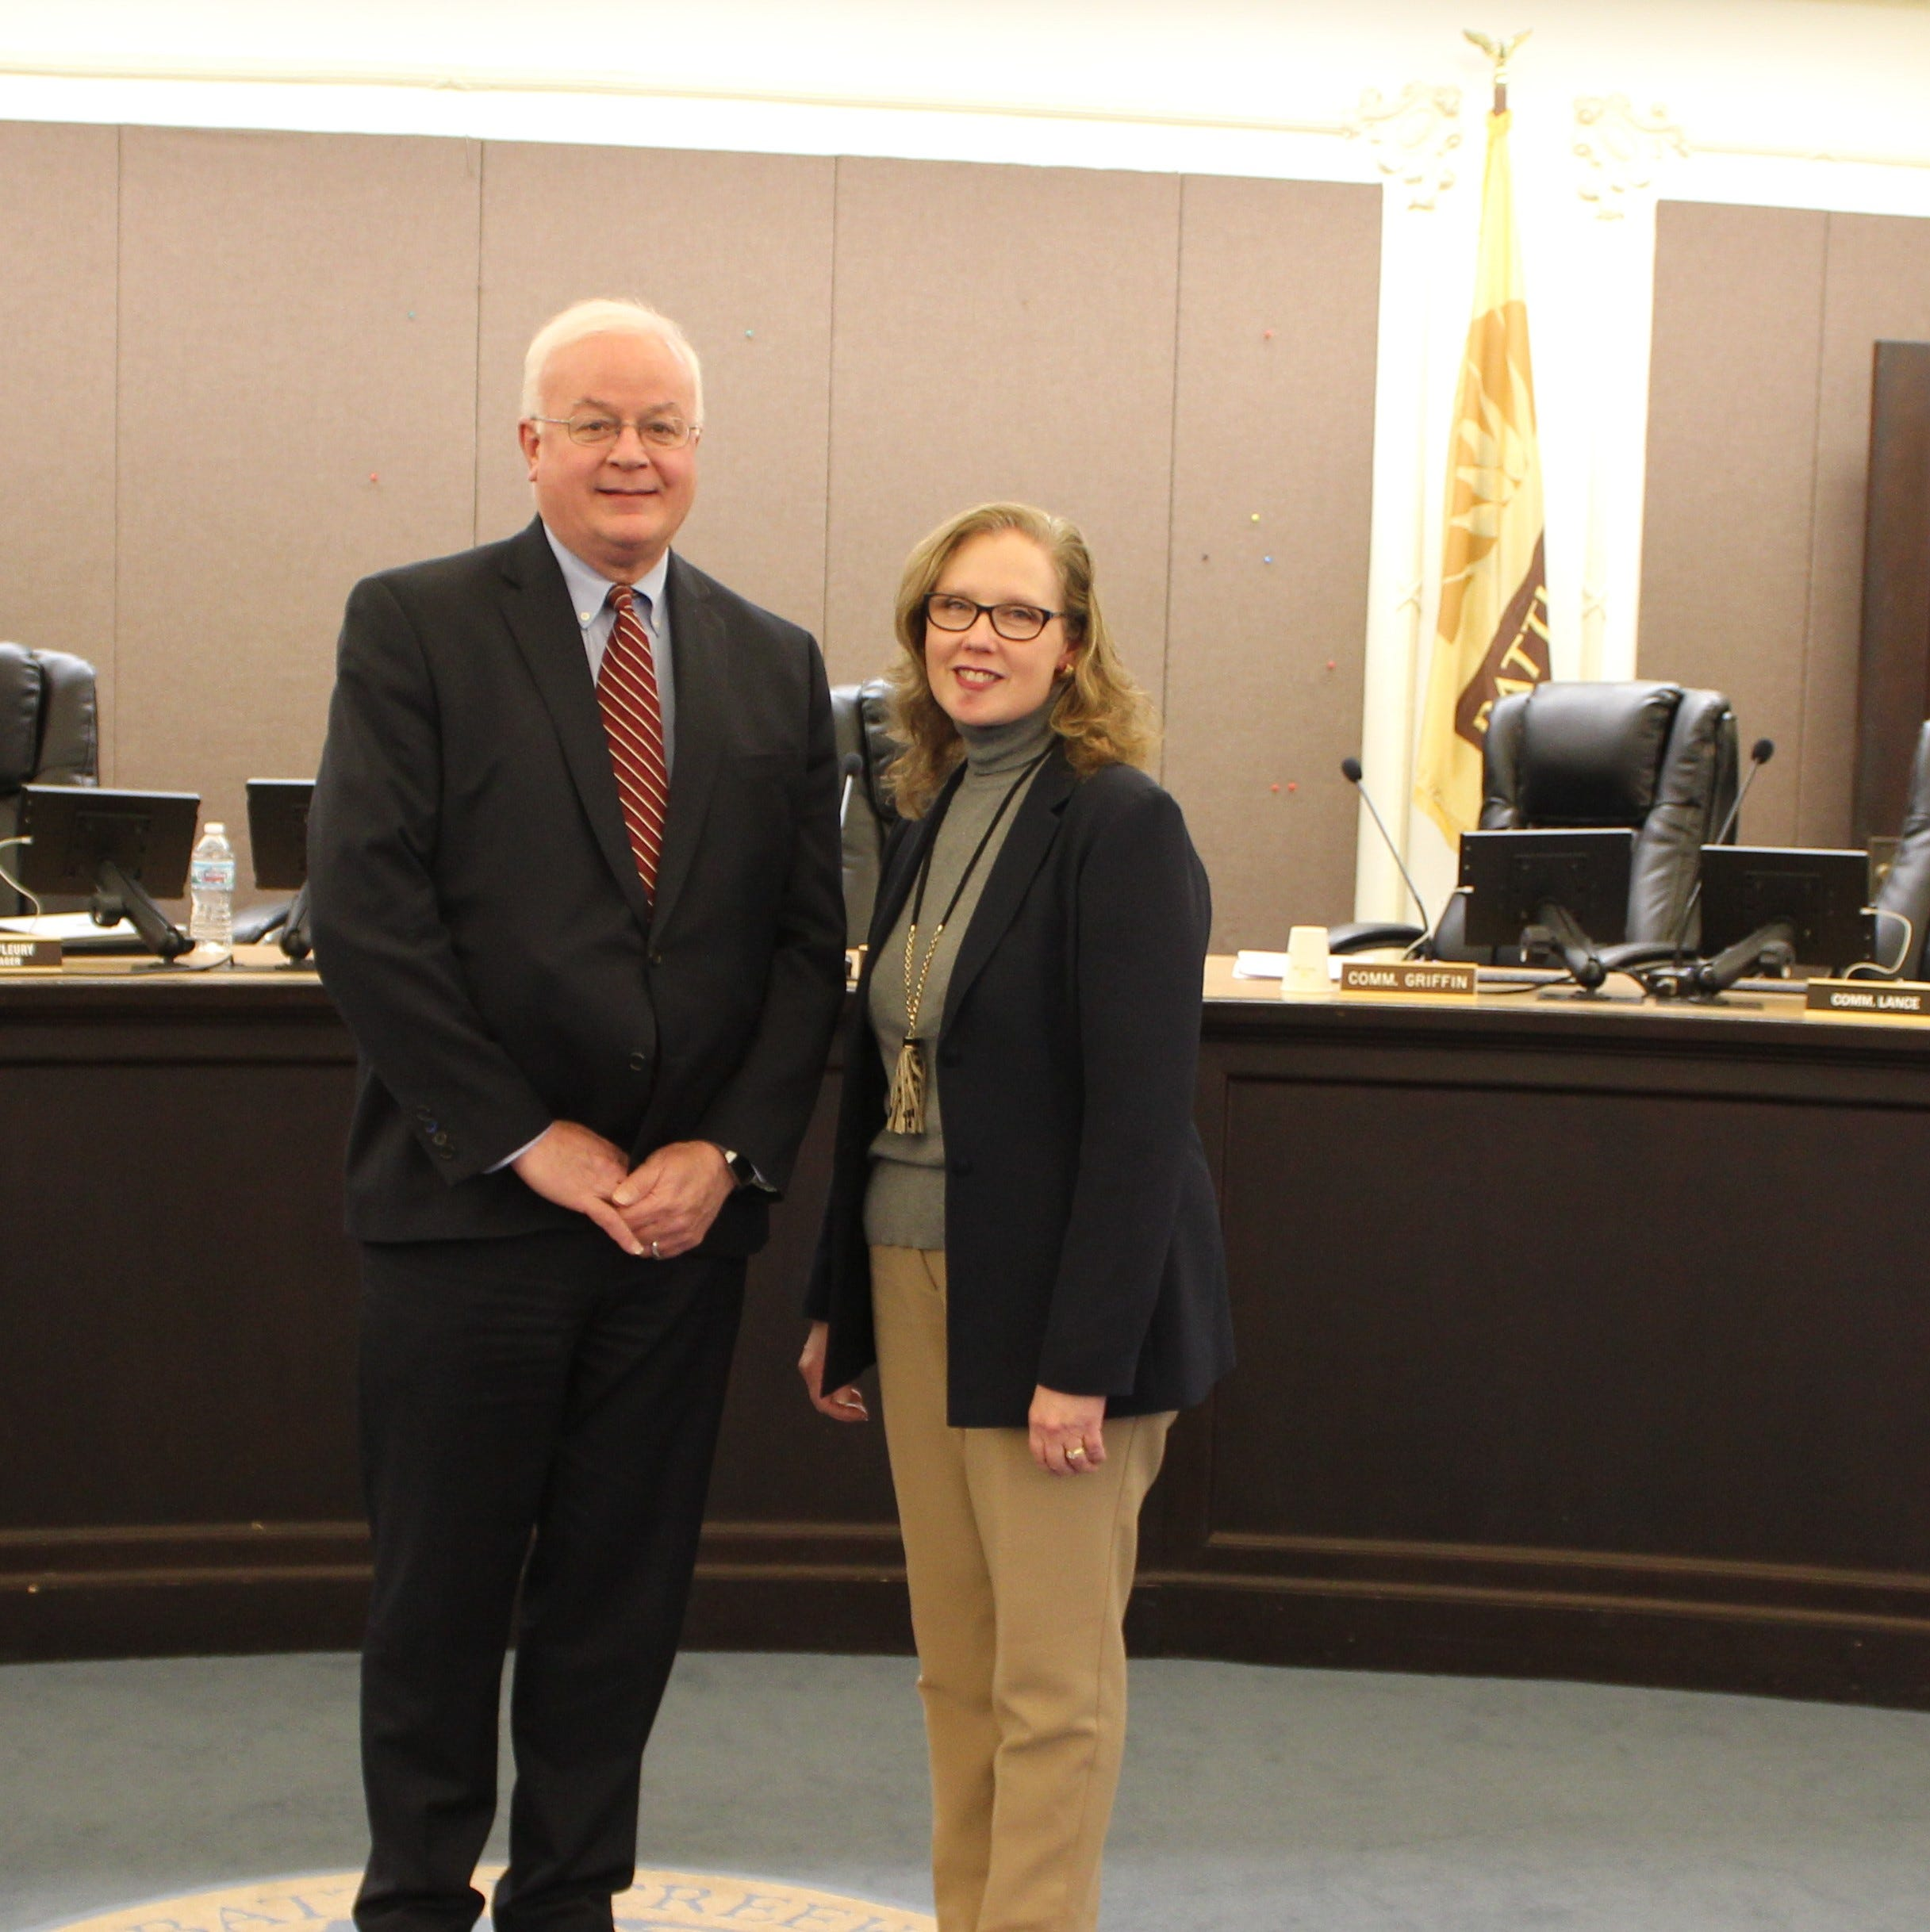 The Battle Creek City Commission appointed Mark Behnke mayor and Sherry Sofia vice mayor at Tuesday night's meeting.